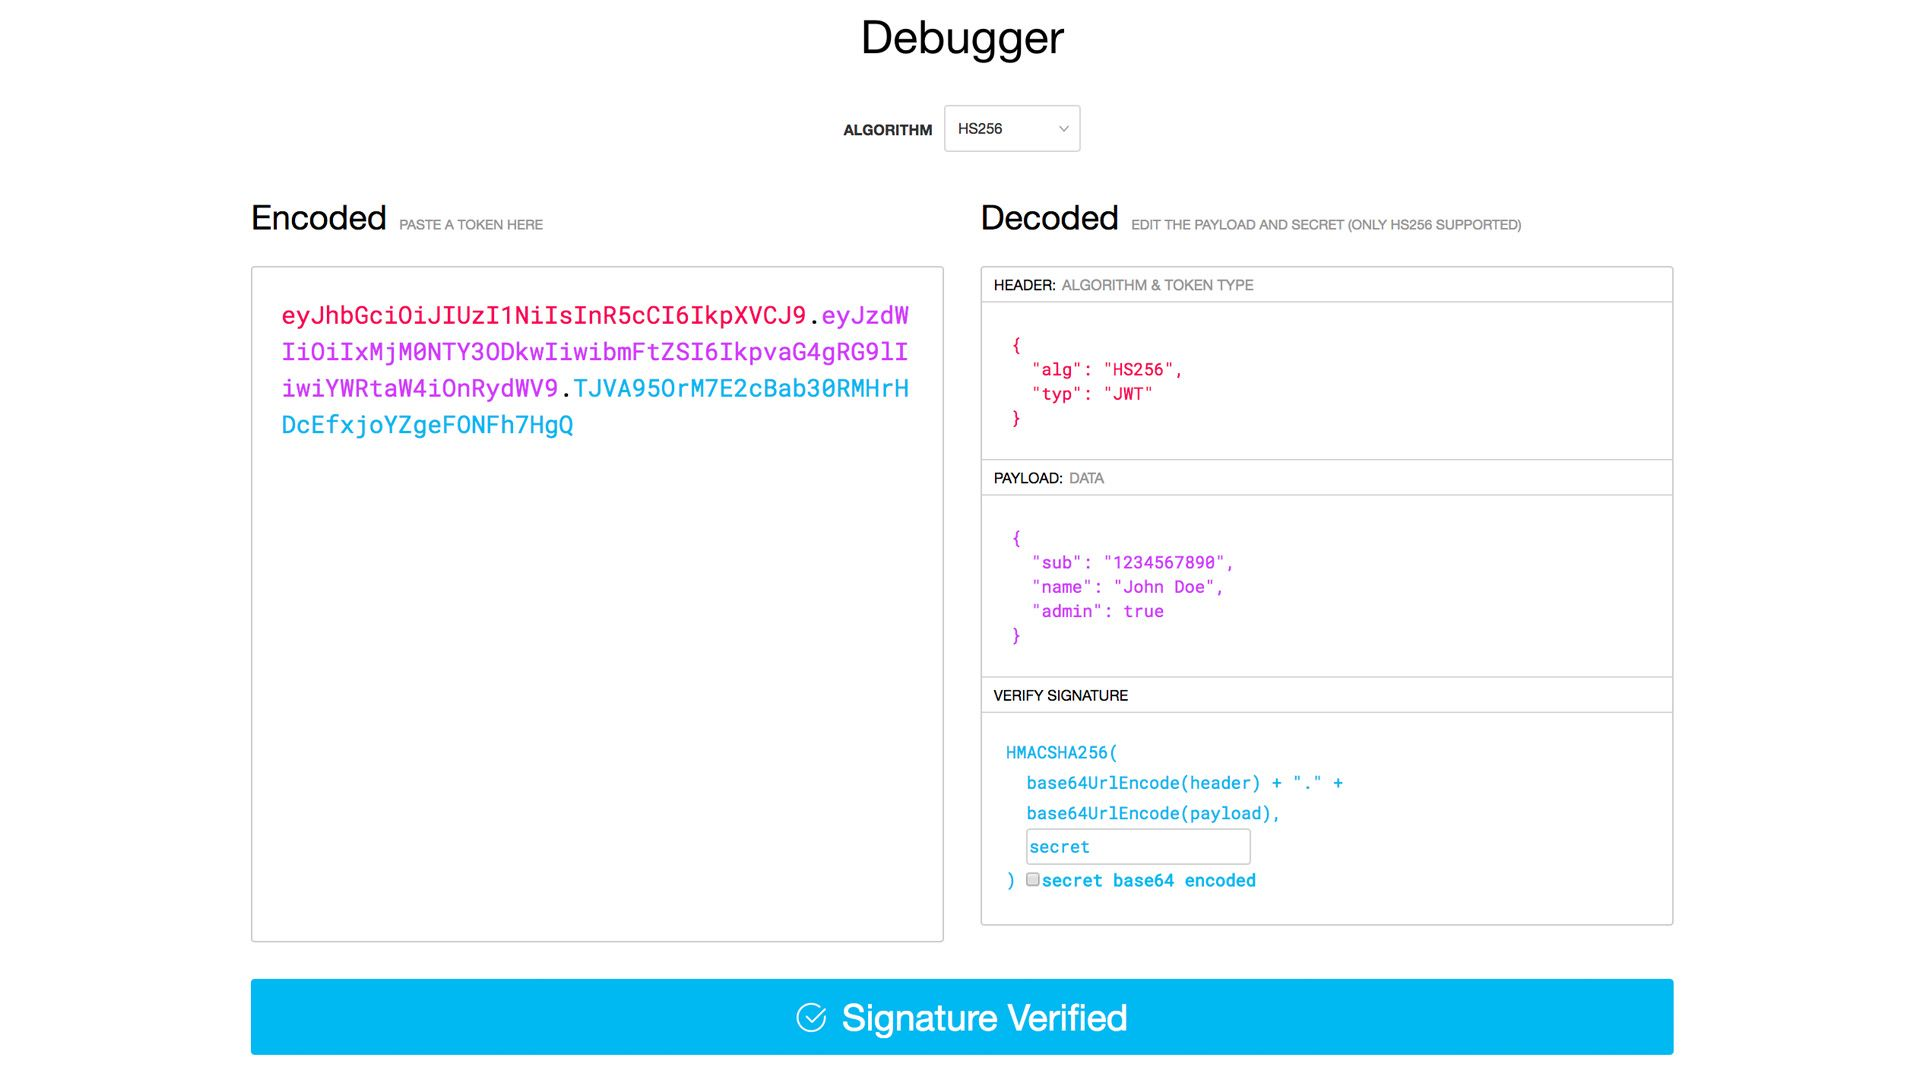 JWT.io debugger helps to encode/decode JSON Web Tokens right in your browser